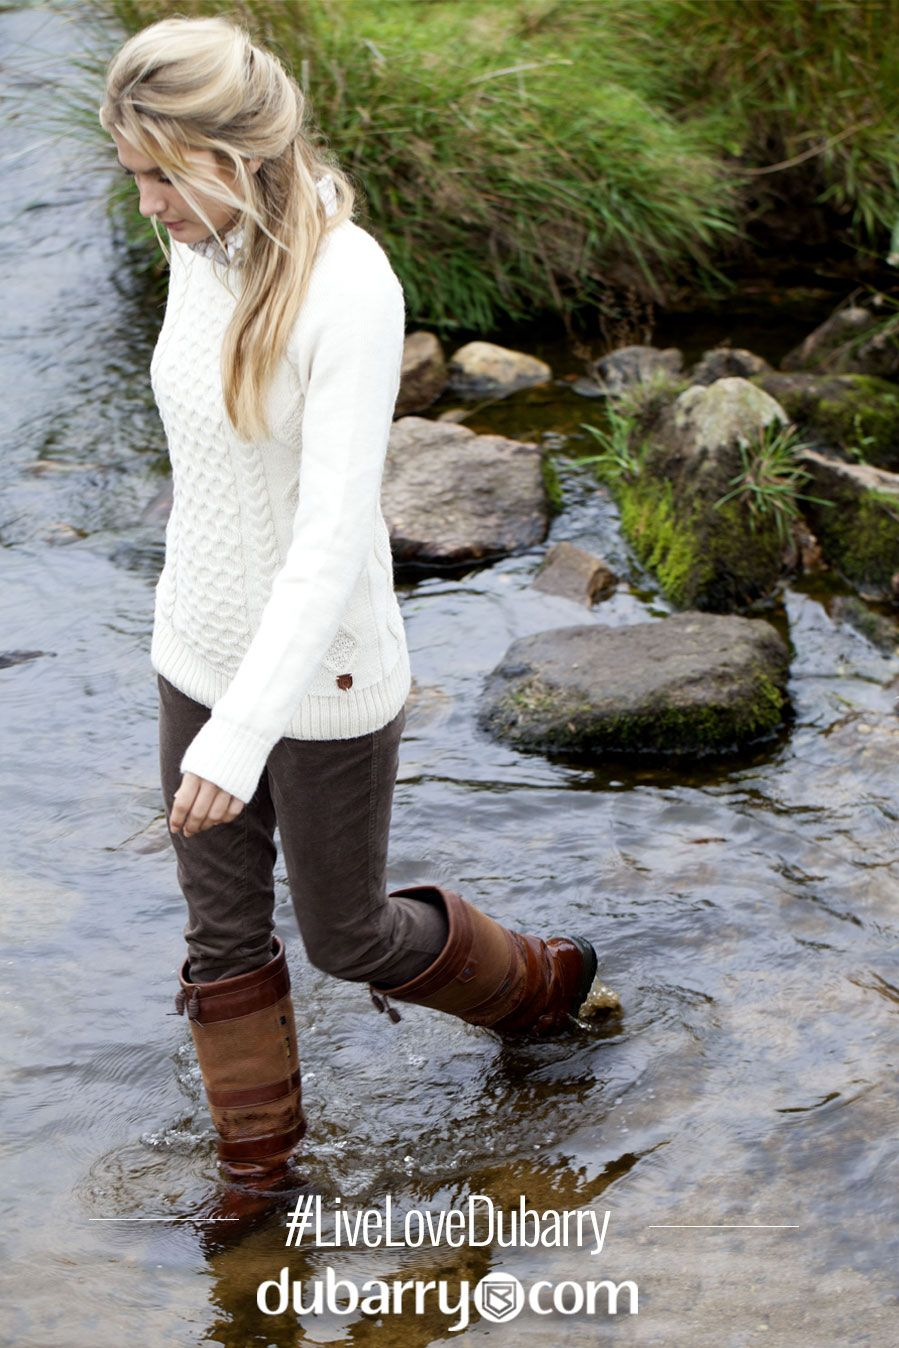 my kind of comfortable waterproof dubarry galway boots soft corduroy honeysuckle trousers shandon luxury cable knit swe fashion country fashion knit outfit pinterest